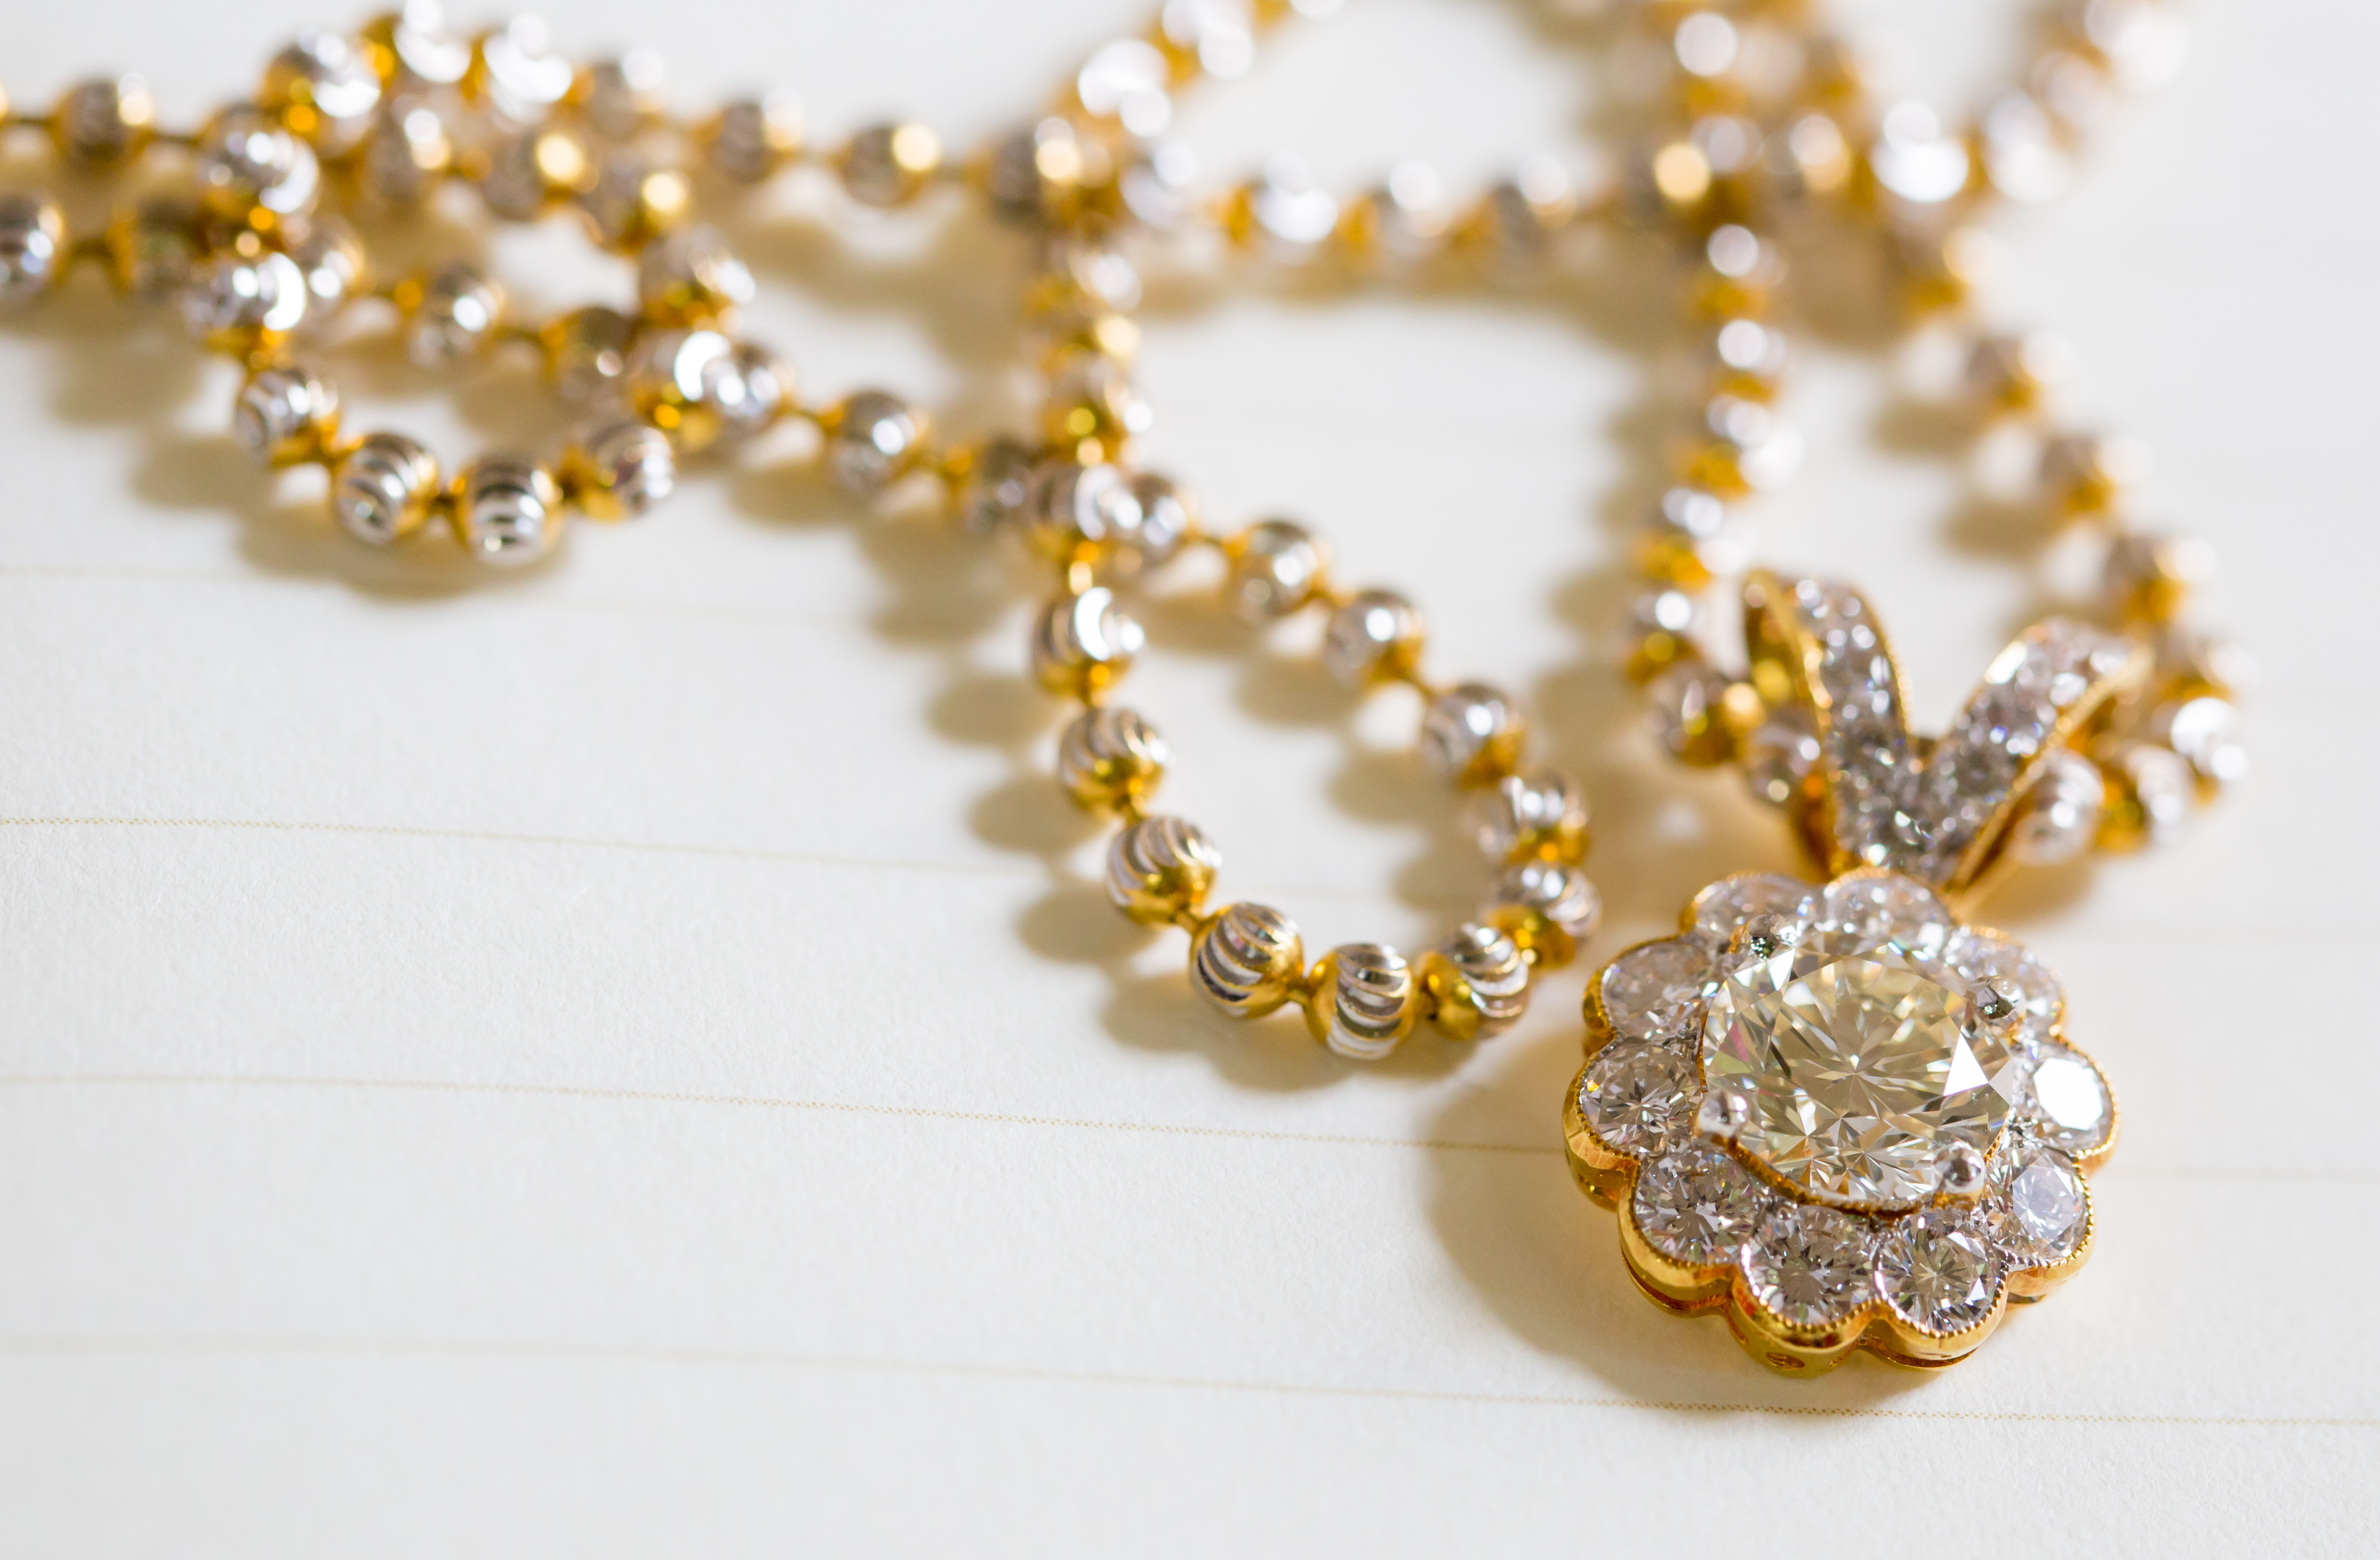 Jewelry Theft or Loss During Travel Has Doubled, Study Finds